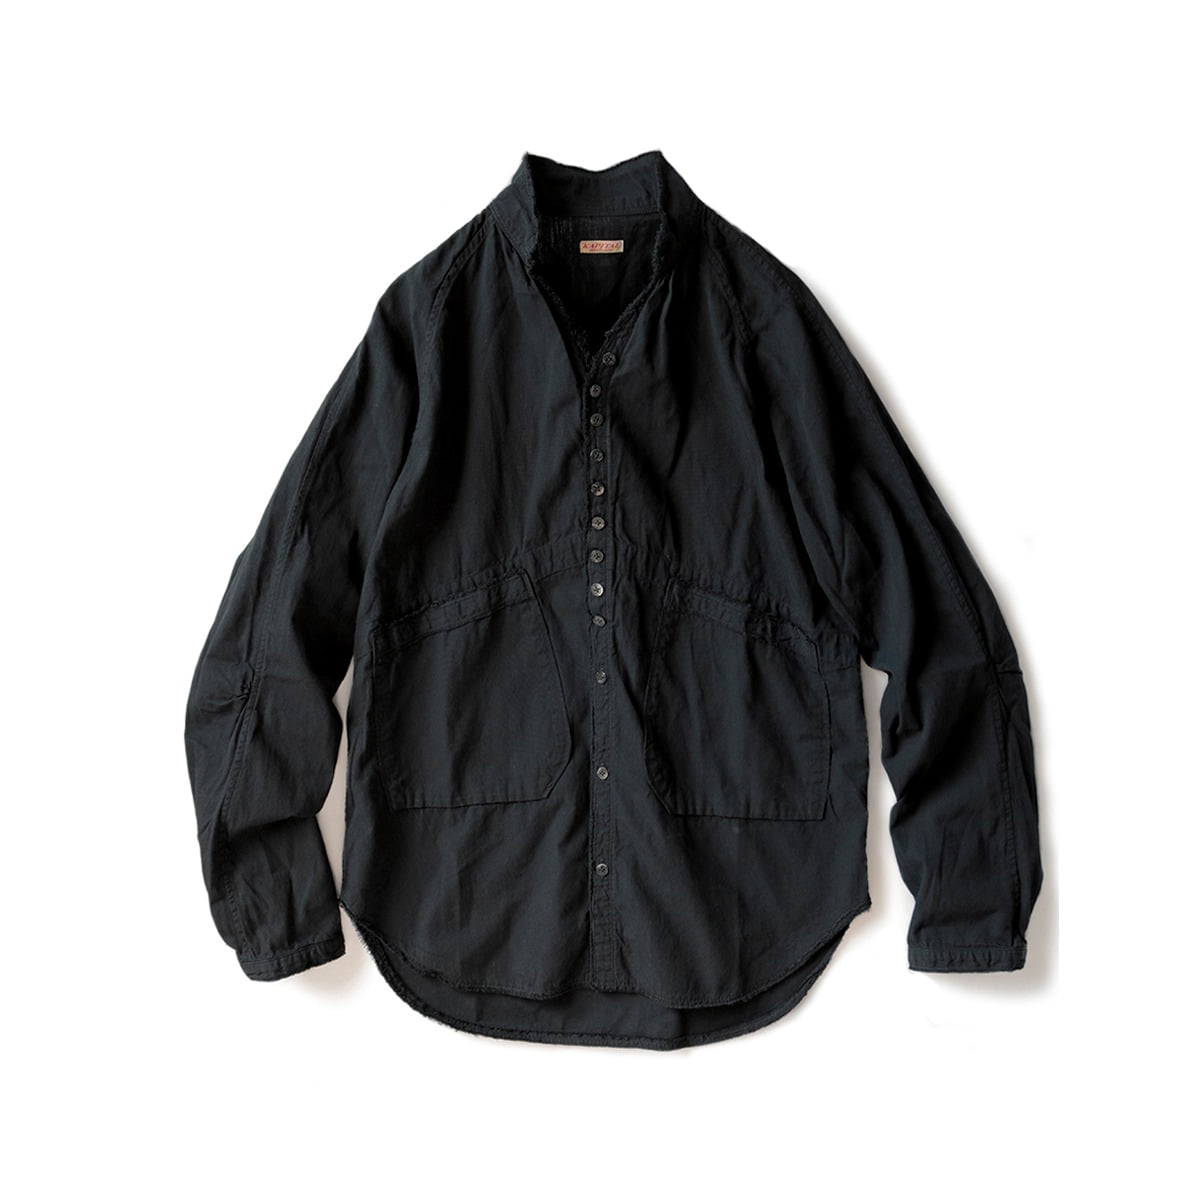 [KAPITAL] BLACK BROAD CLOTH BASQUIAT SHIRT 'BLACK'